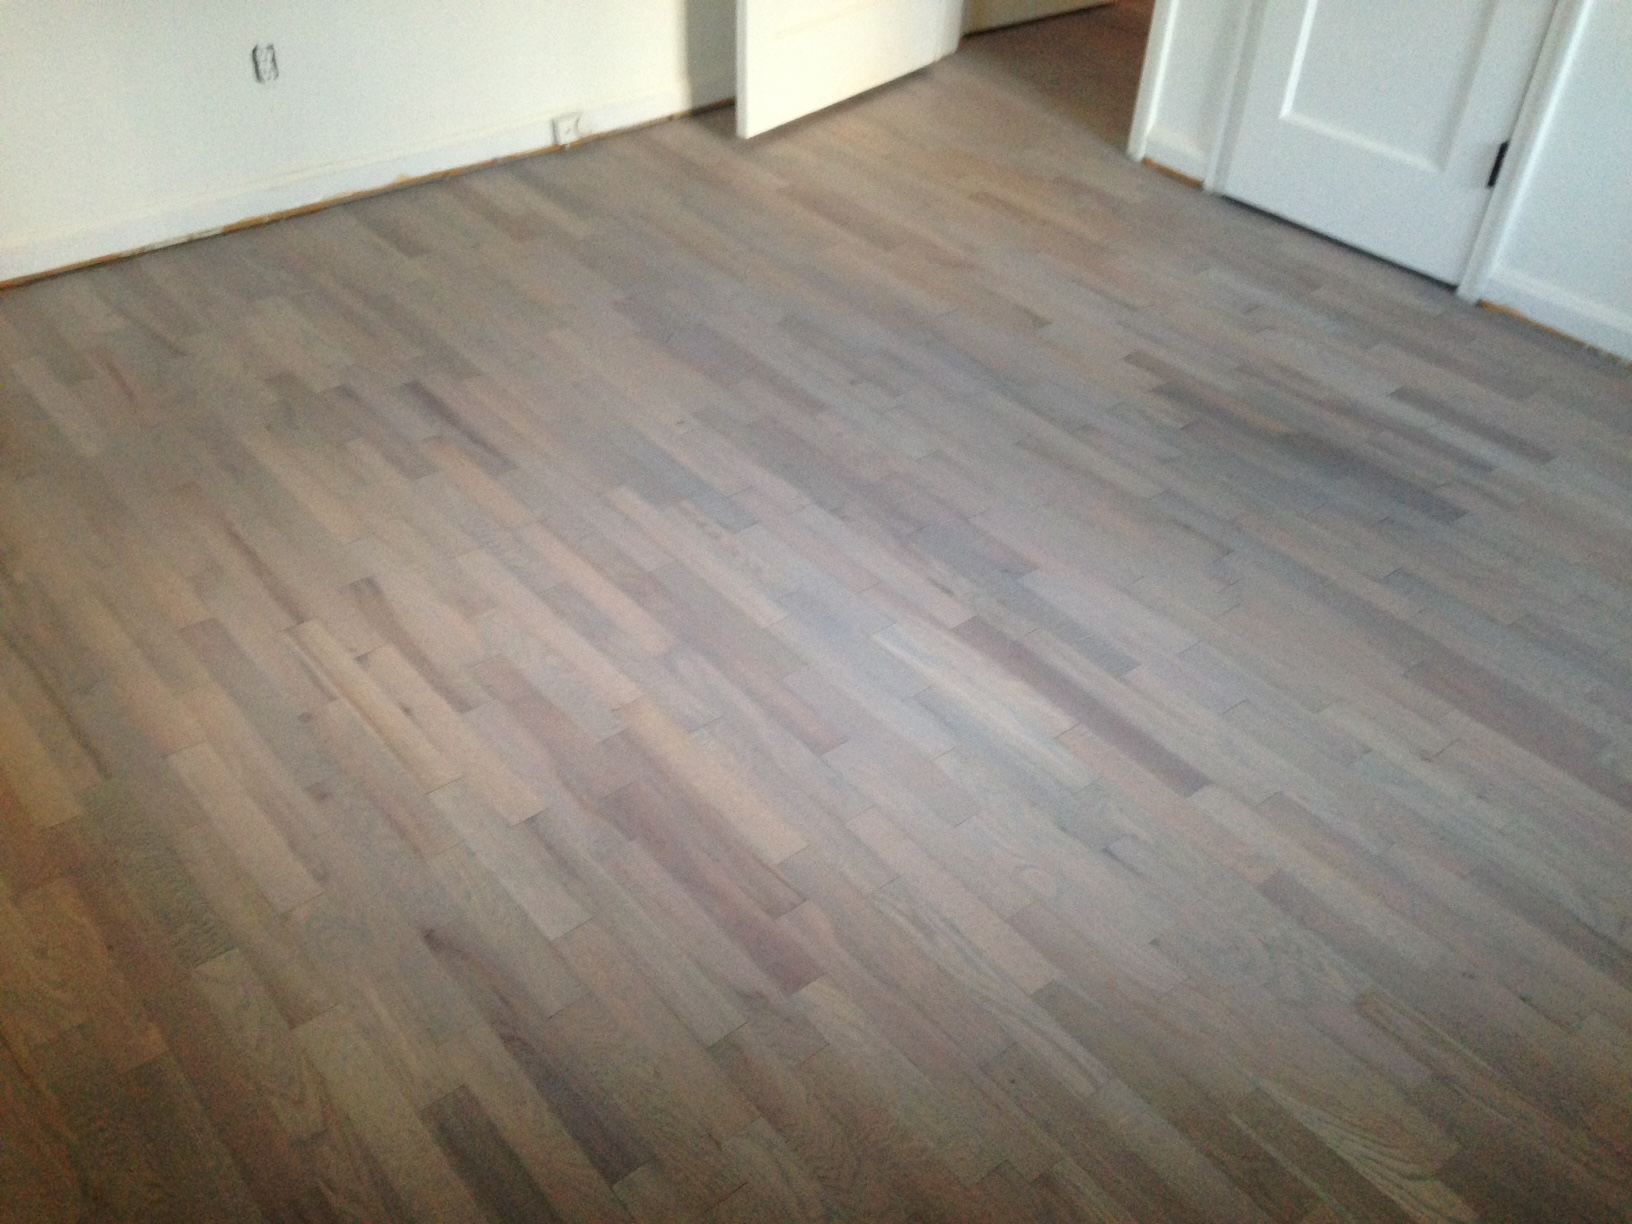 Refinish wood floors cost of refinishing wood floors for Wood floor refinishing